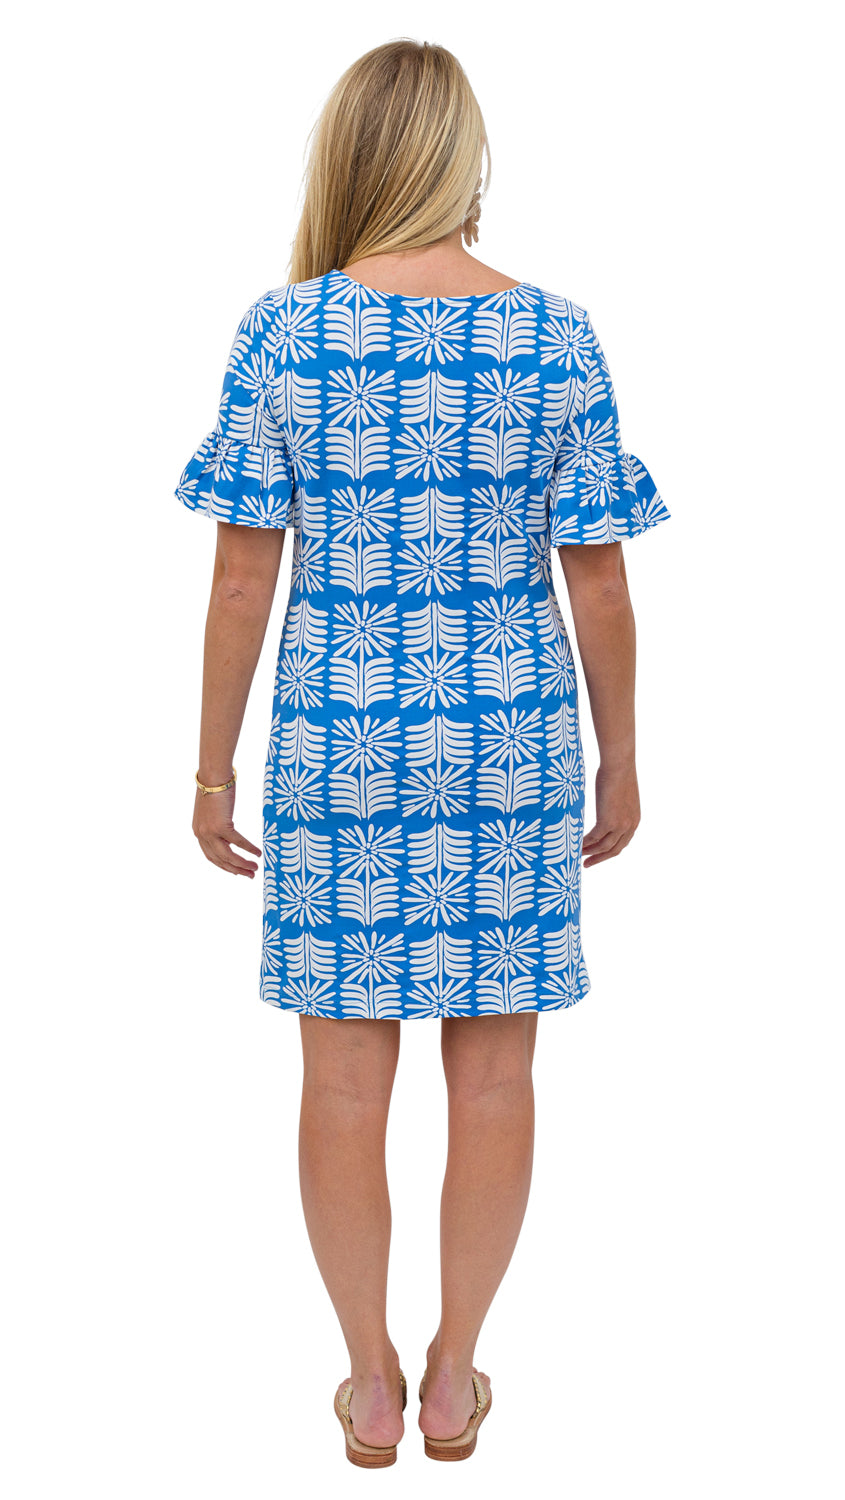 Dockside Dress - Blue/White Montauk Daisy